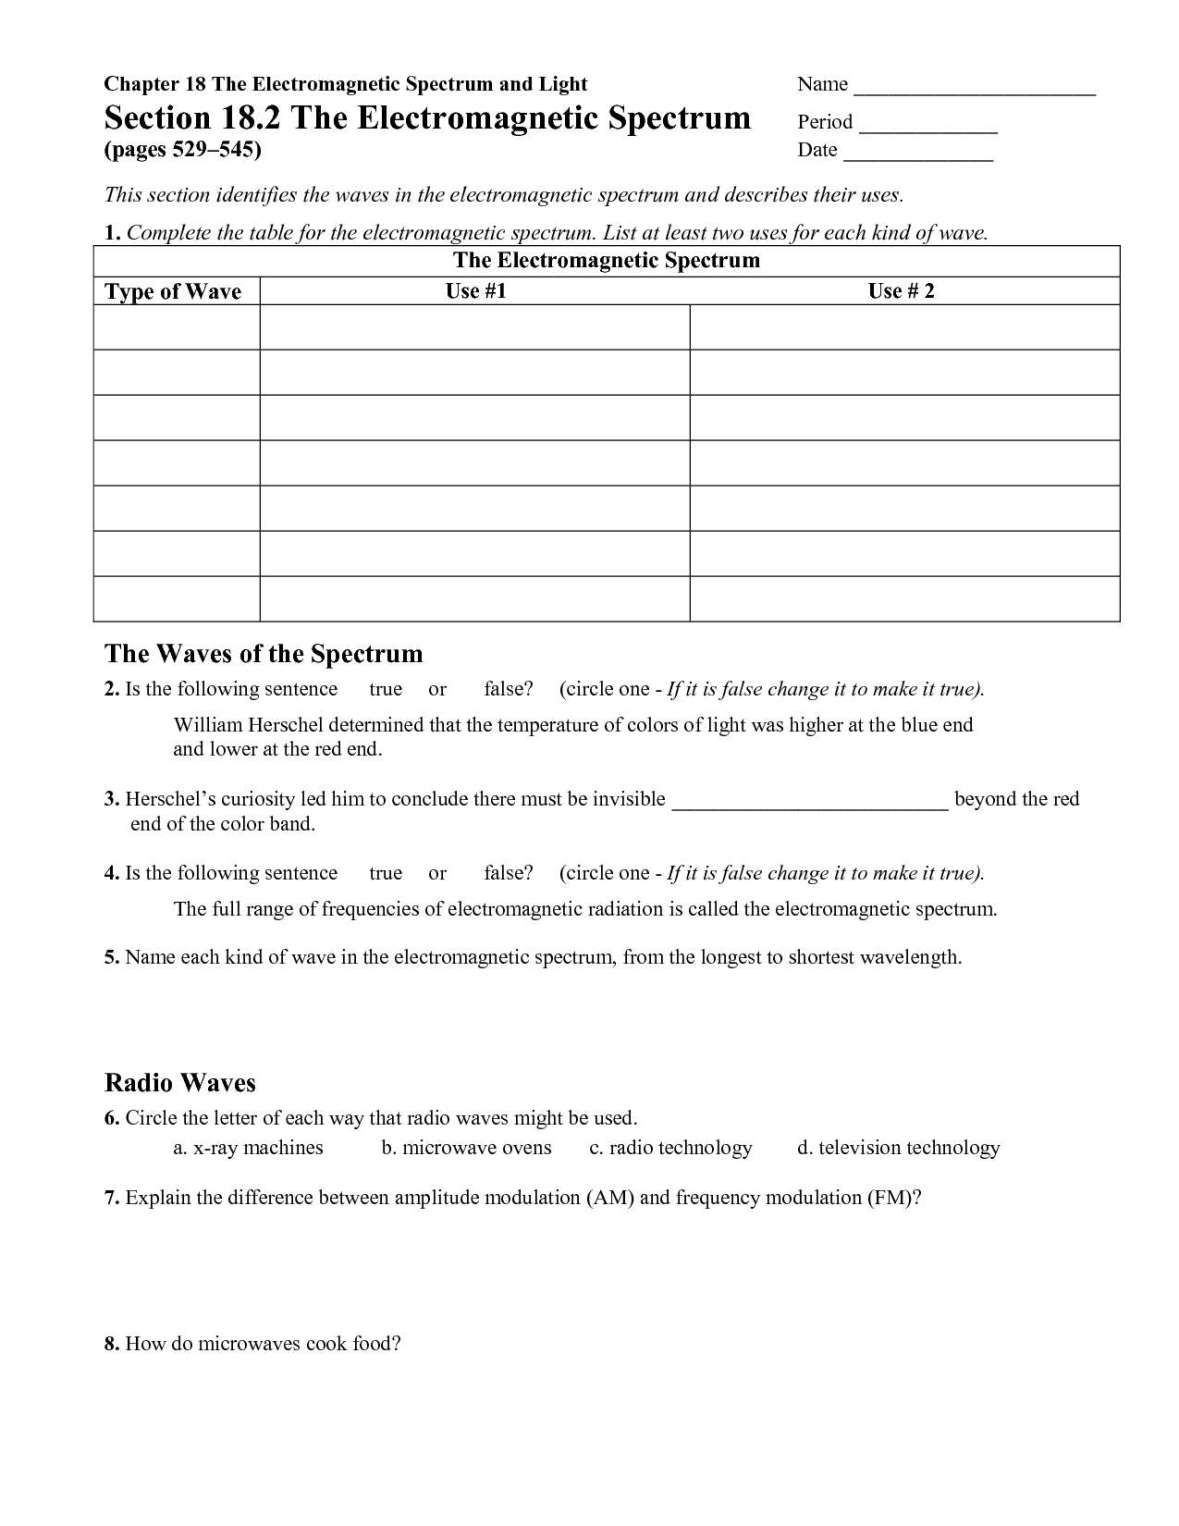 The Electromagnetic Spectrum Worksheet Answers